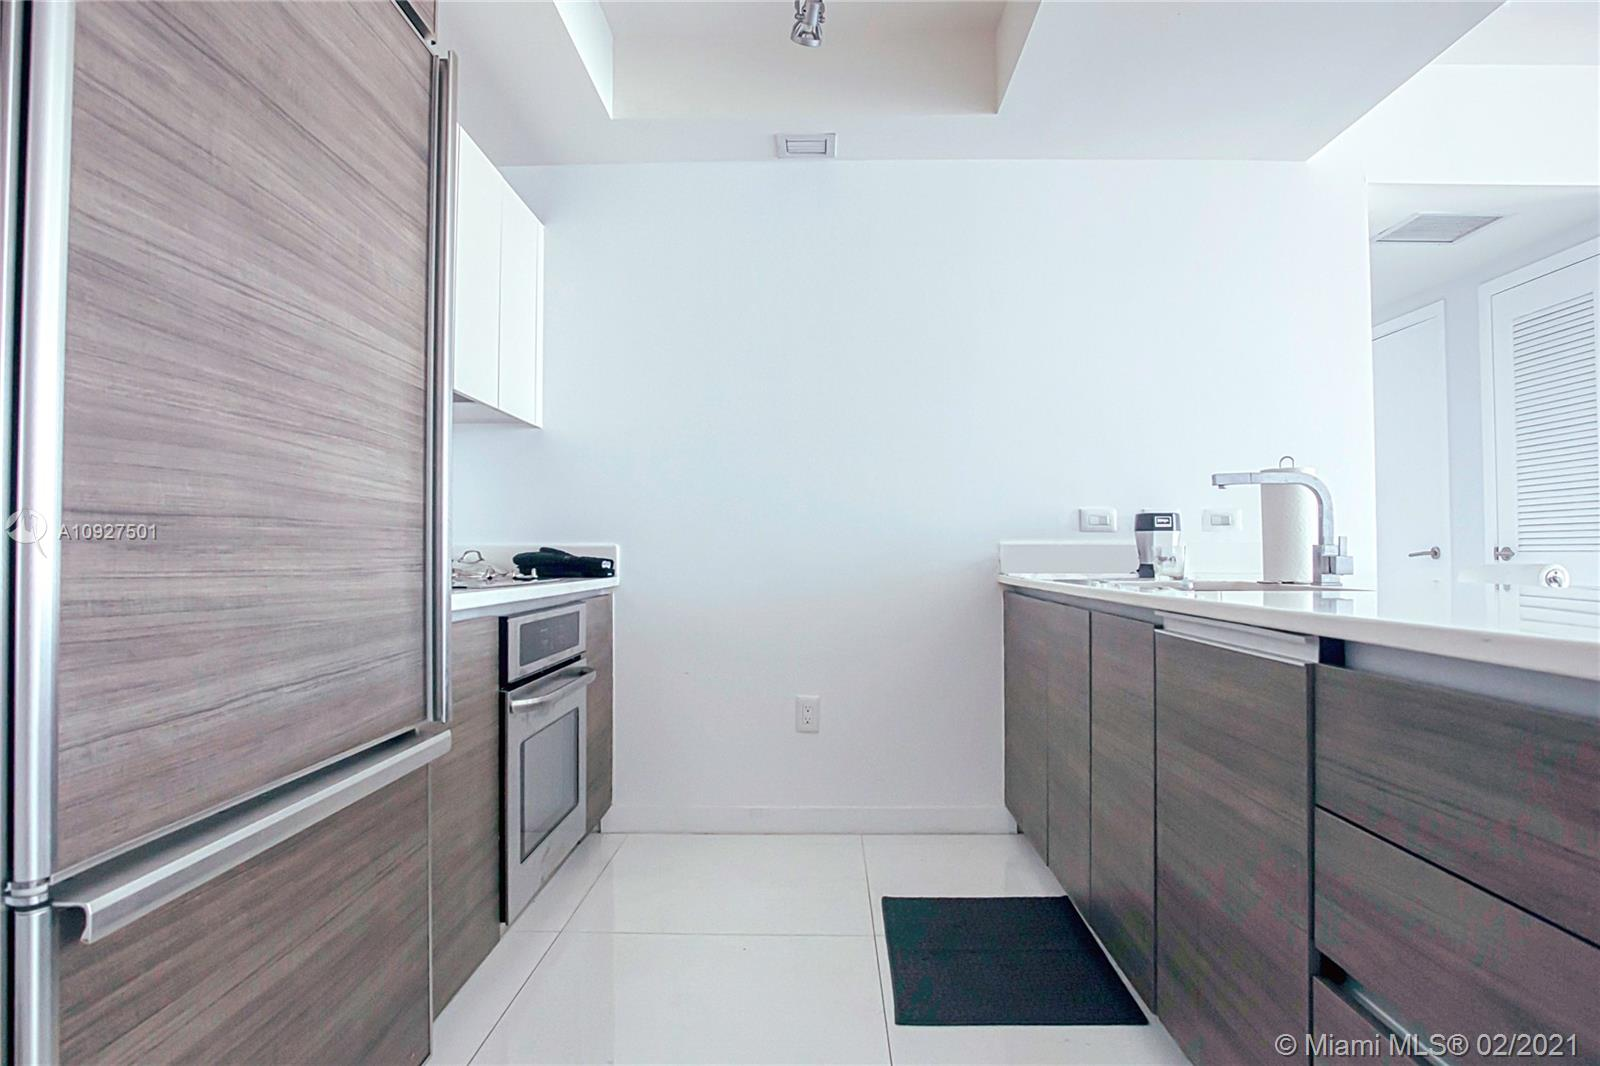 Come live in a completely upgraded Spacious Studio in the heart of the Brickell City Center and walkable to retail, restaurants, and the train. The unit boasts High Ceilings, California Closets, Tile throughout, Tiled Balcony, Glass Shower Enclosure, TV Wall Mount Electrical hook-up, Rolling Blackout Shades, Curtain Rods, Recessed Lighting, Bedroom Privacy Divider, and modern Italian cabinetry throughout. Millicento by Pininfarina is an elegant and luxurious boutique high-rise with full amenities. Come take in the views from the Roof Top Skyline Pool, bask in the lower shaded pool, work/study in the many well-designed sitting areas, enjoy the theatre, gym, cardio room, yoga room, an indoor playroom for the kiddos. 24-Hour Security. Parking space included.